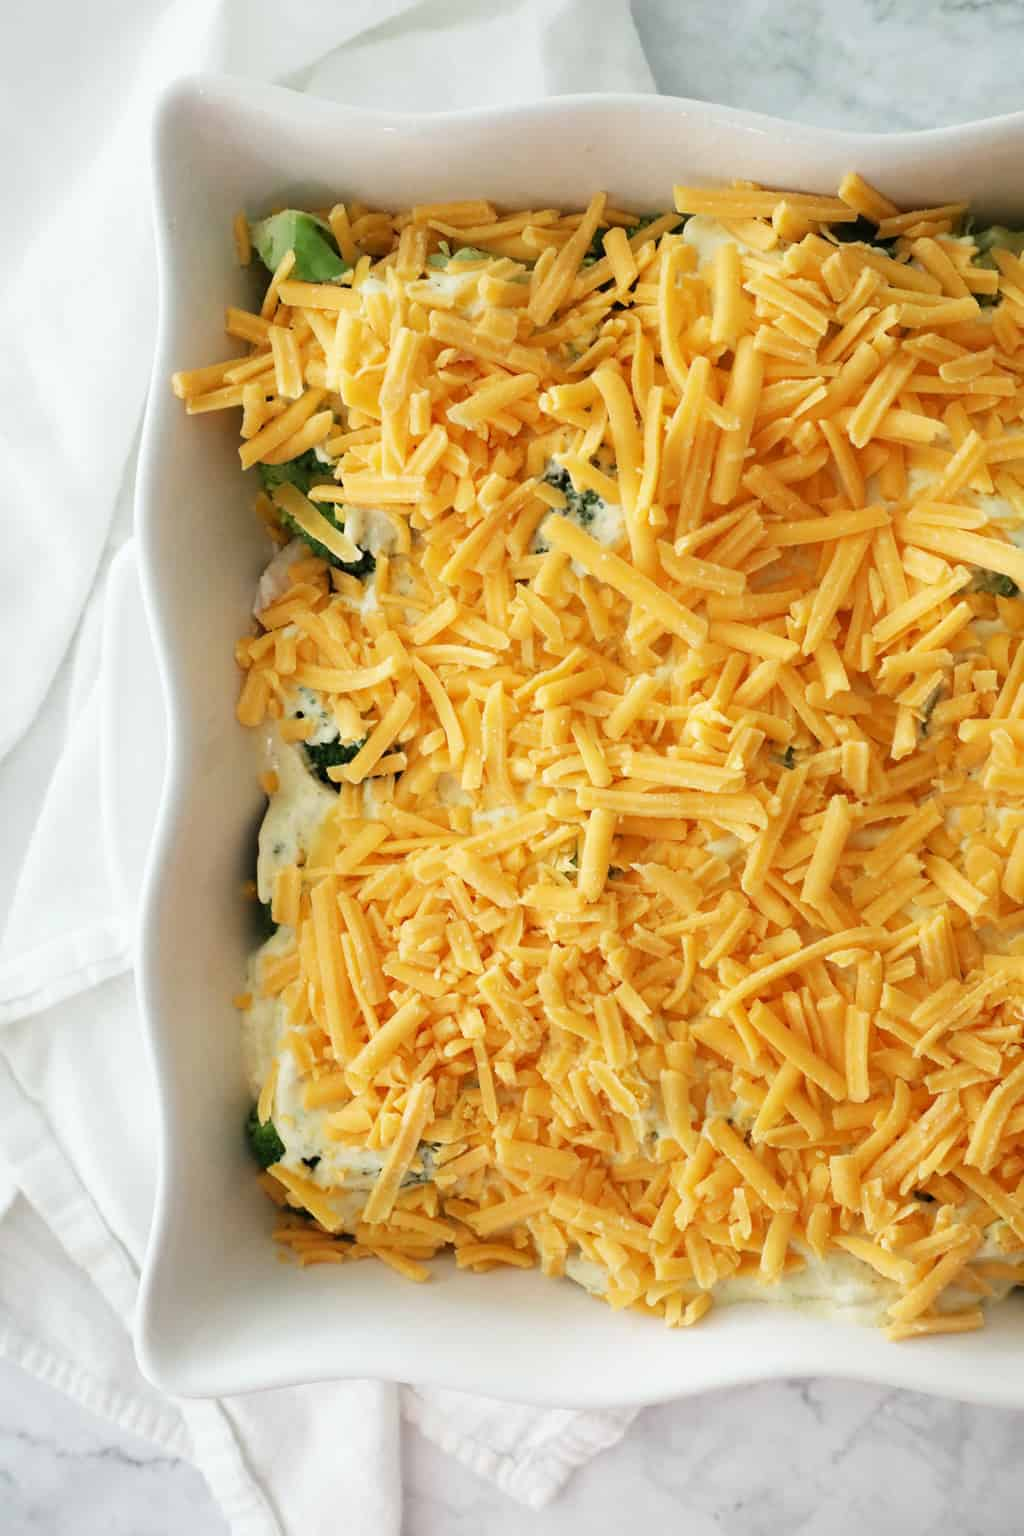 a casserole dish filled with casserole with unmelted cheese on the top